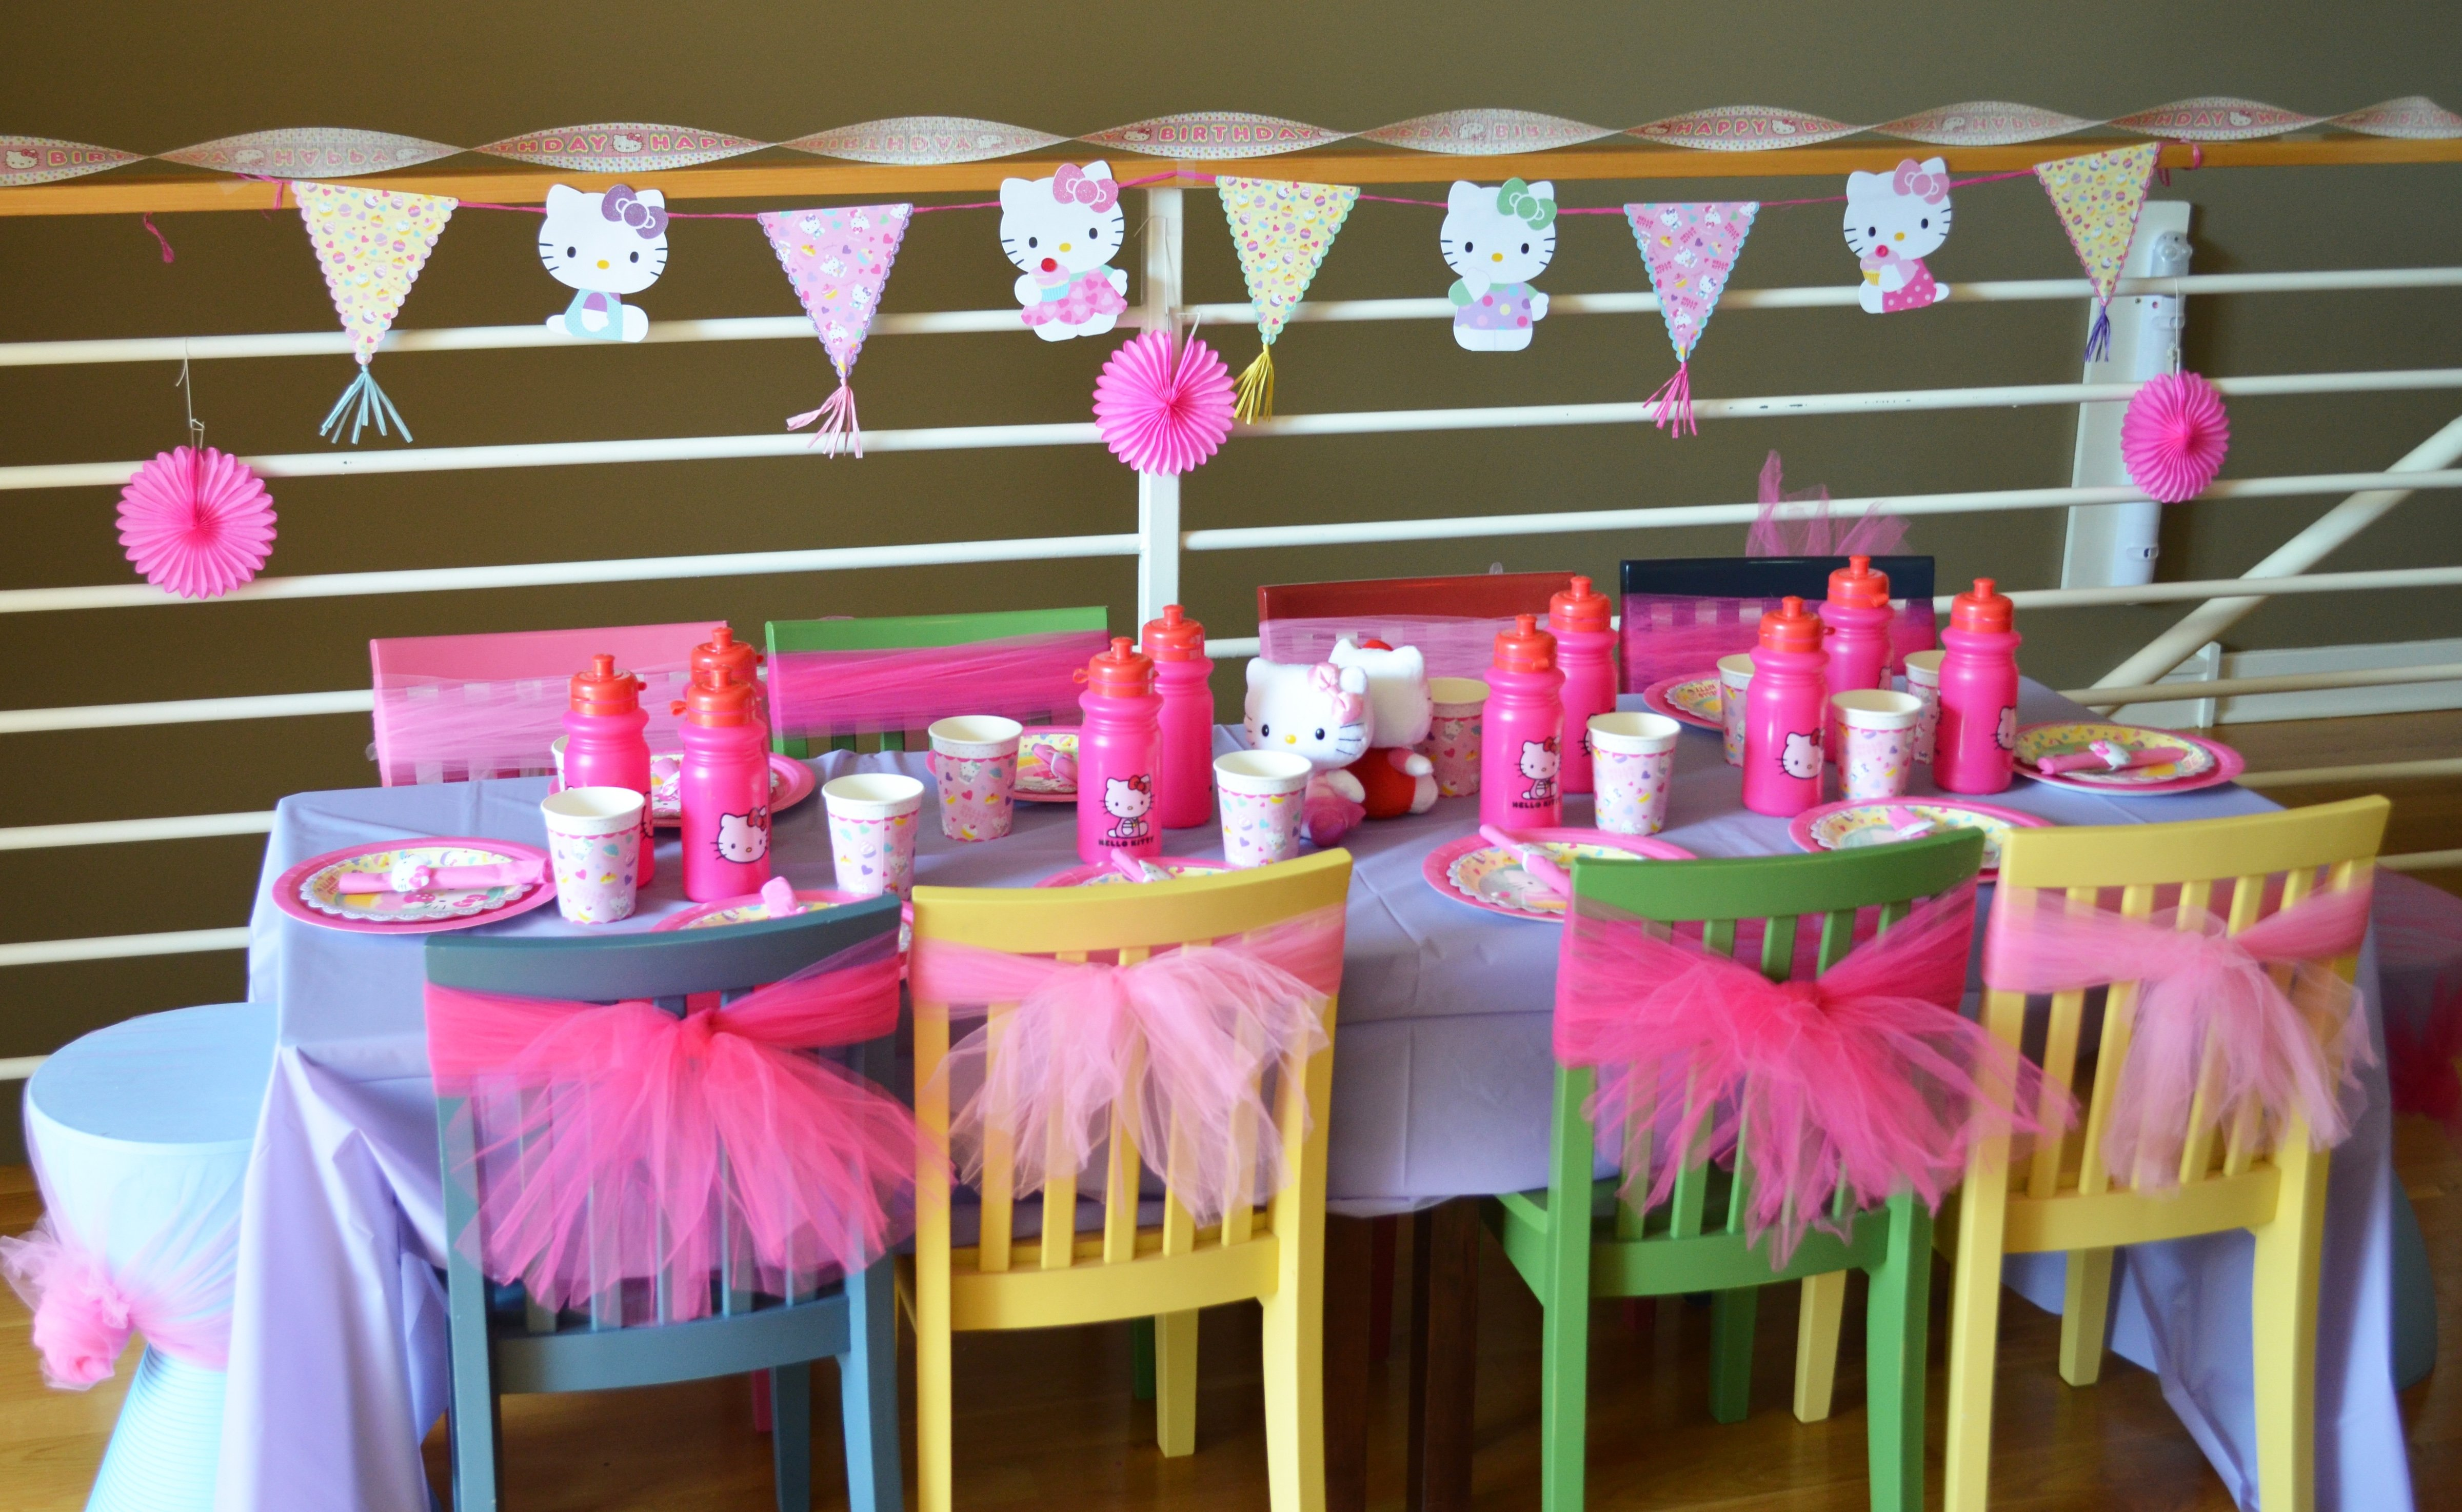 10 Nice 10 Year Old Birthday Ideas wondrous ideas for 10 year old birthday party at home best of craft 2021